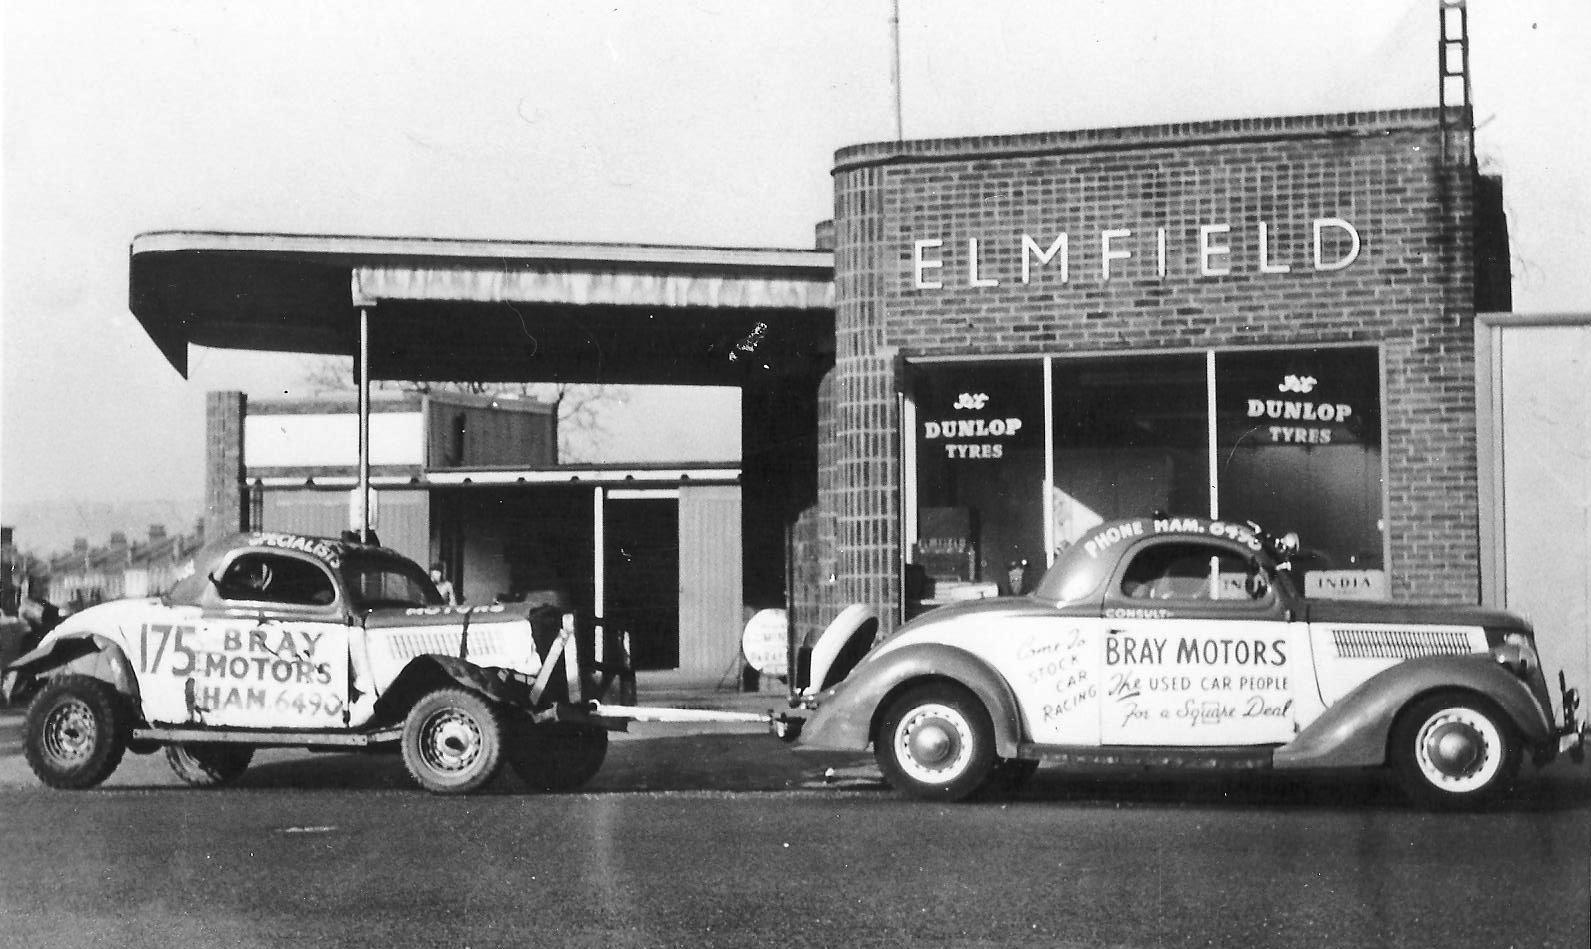 bray motors at elmfield